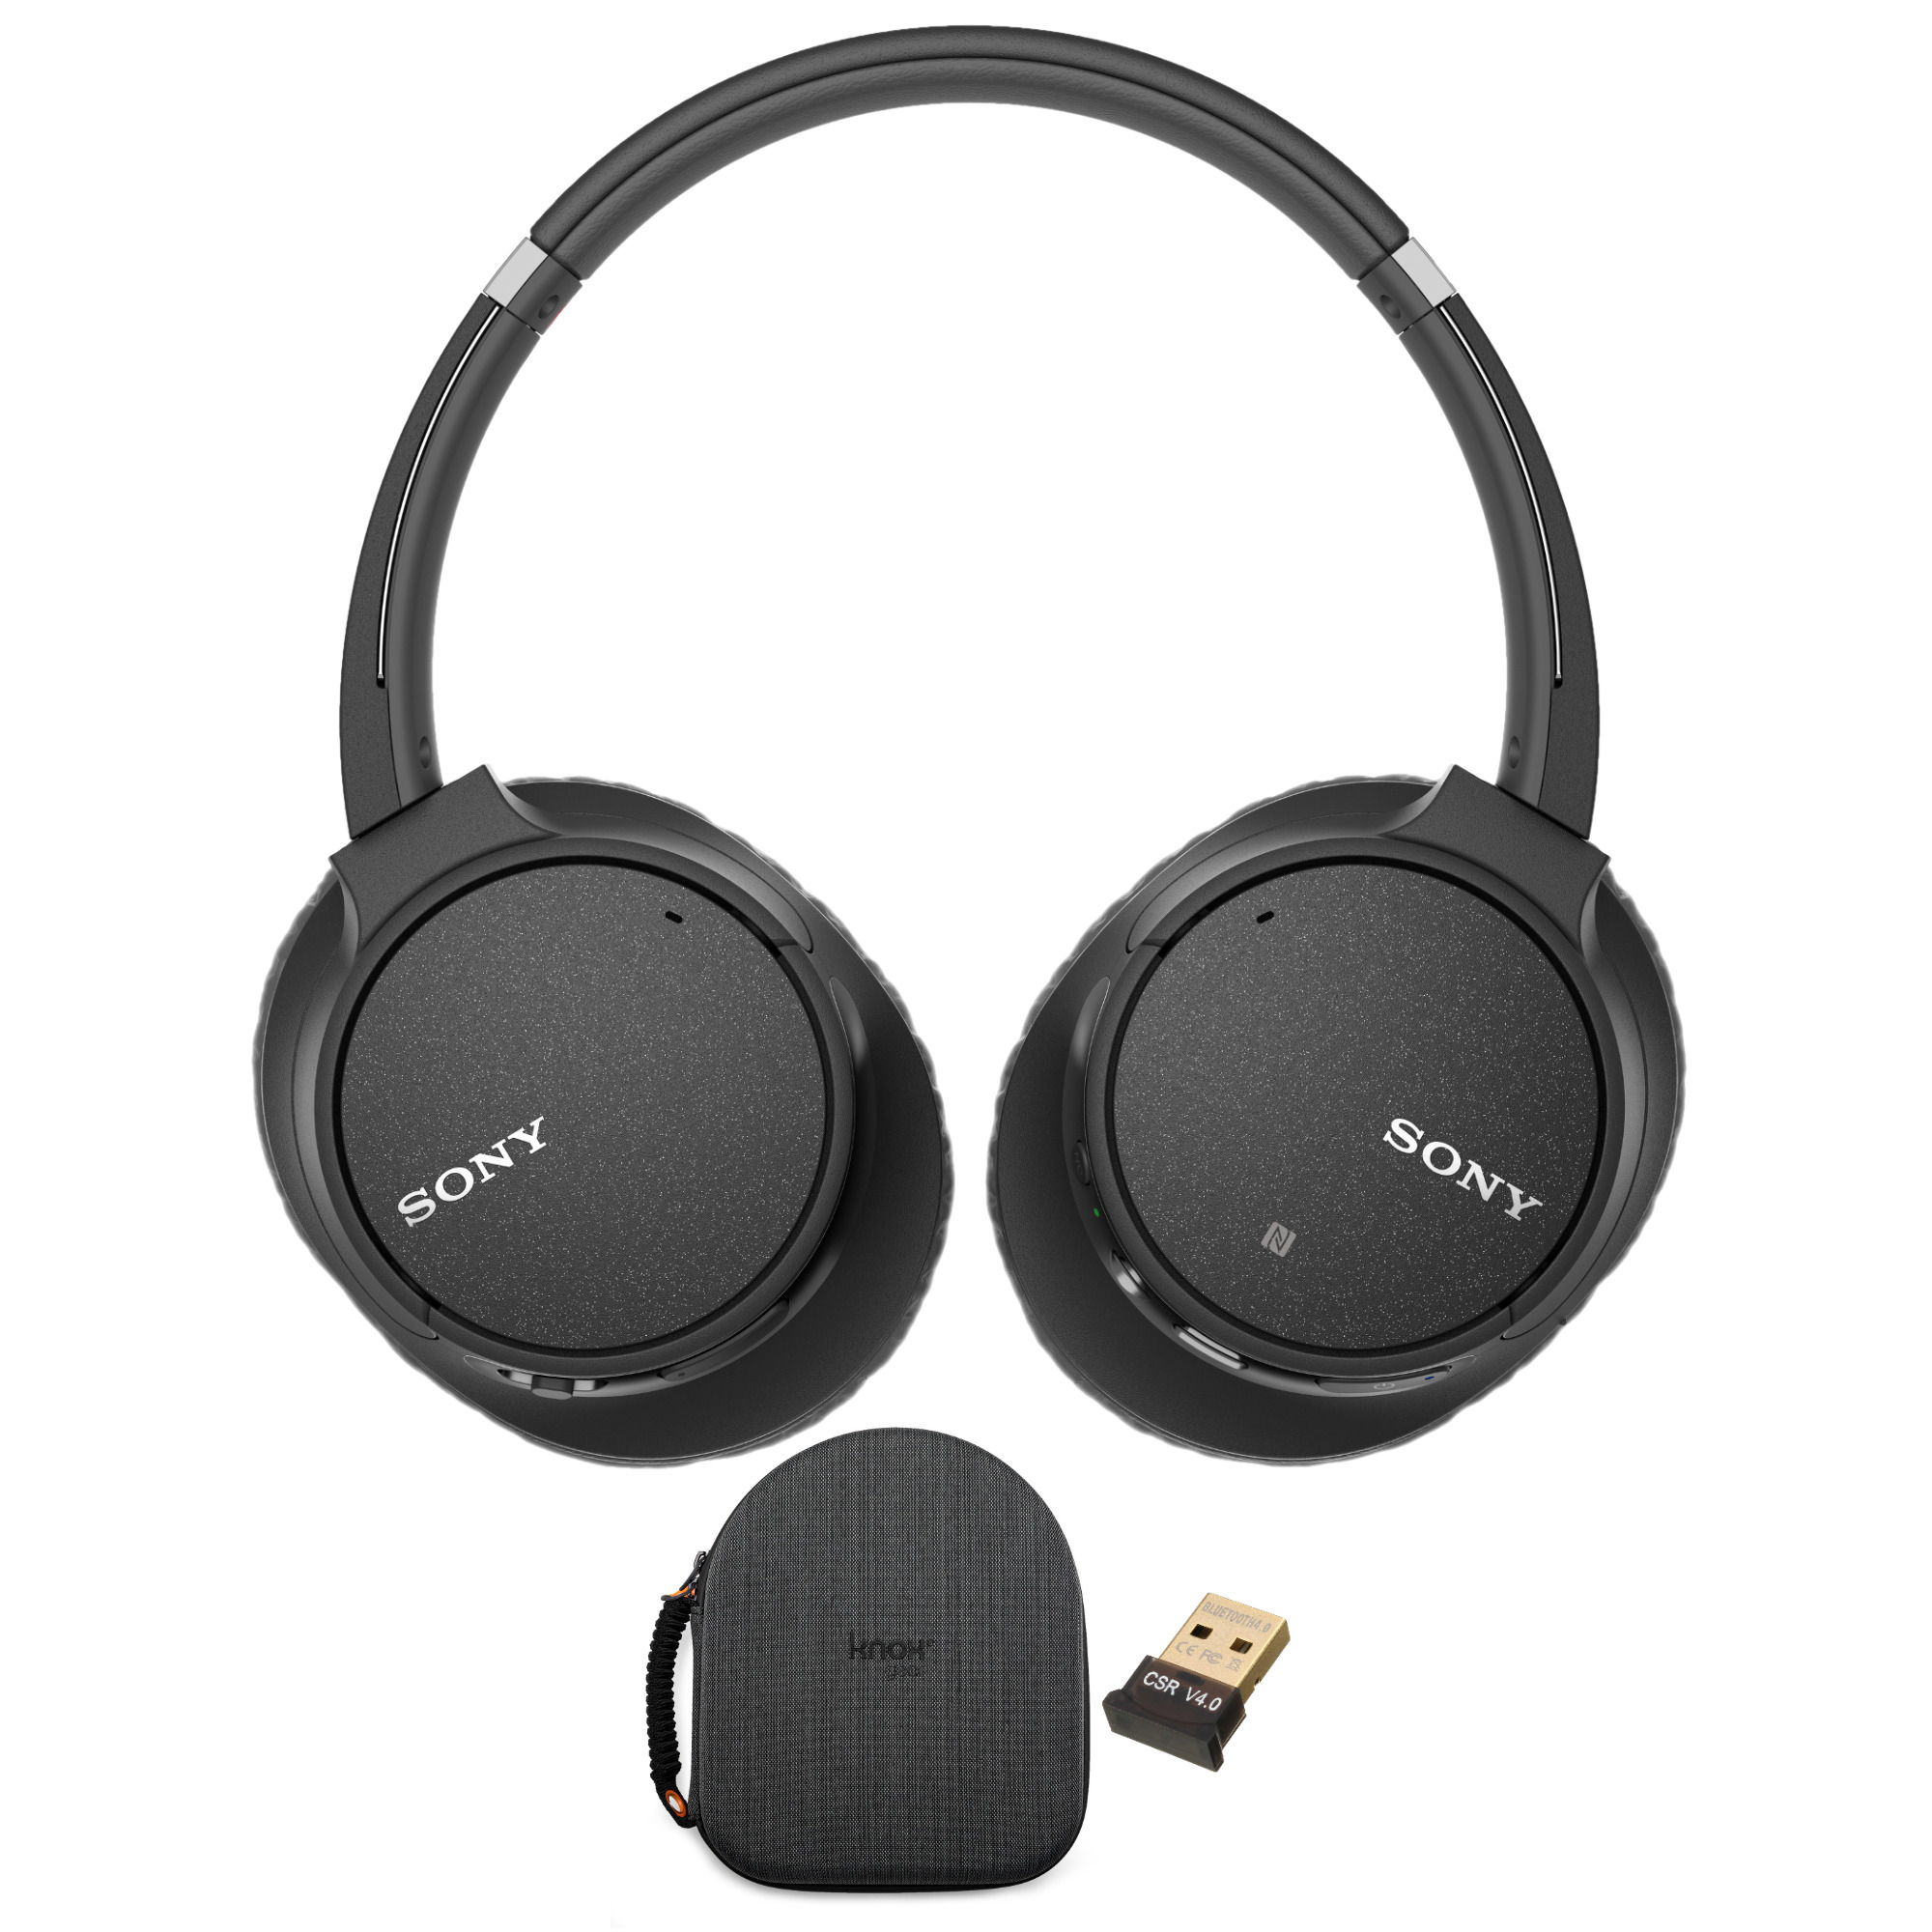 Sony WH-CH700N Wireless Noise Canceling Headphones (Black) with Case Bundle